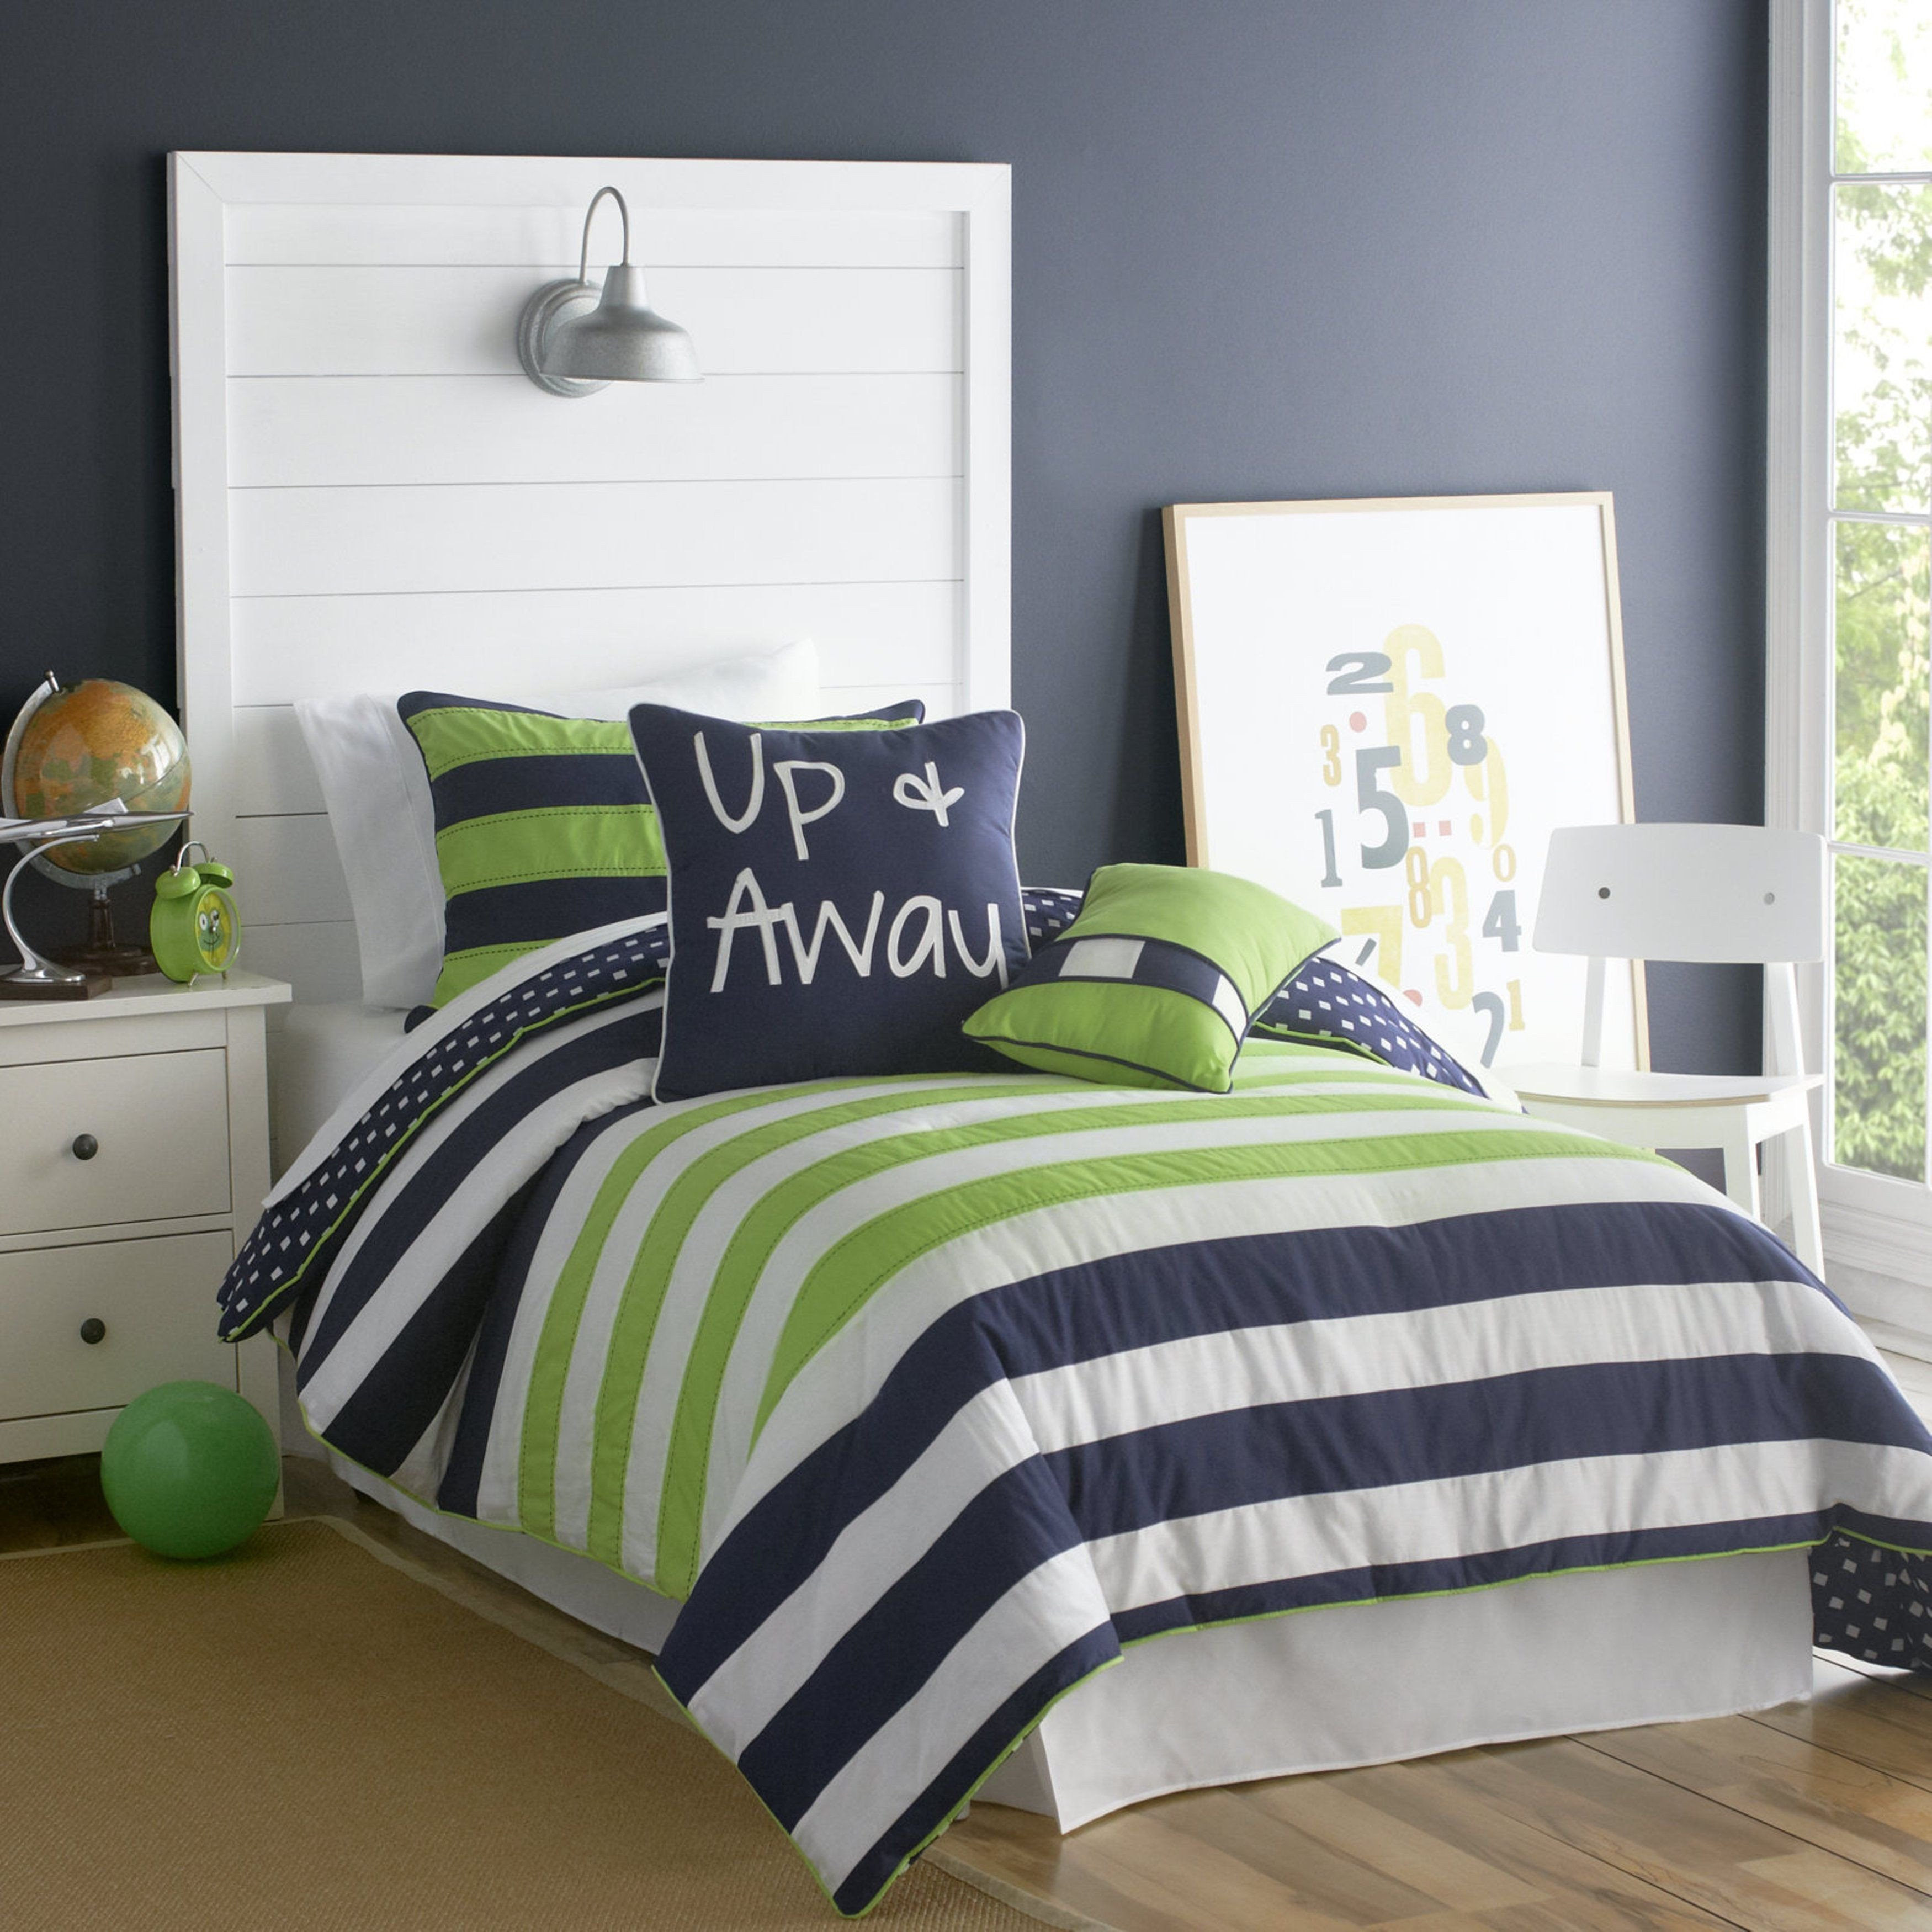 Boy Full Size Bedroom Set Lovely Vcny Big Believers Up and Away 3 Piece forter Set